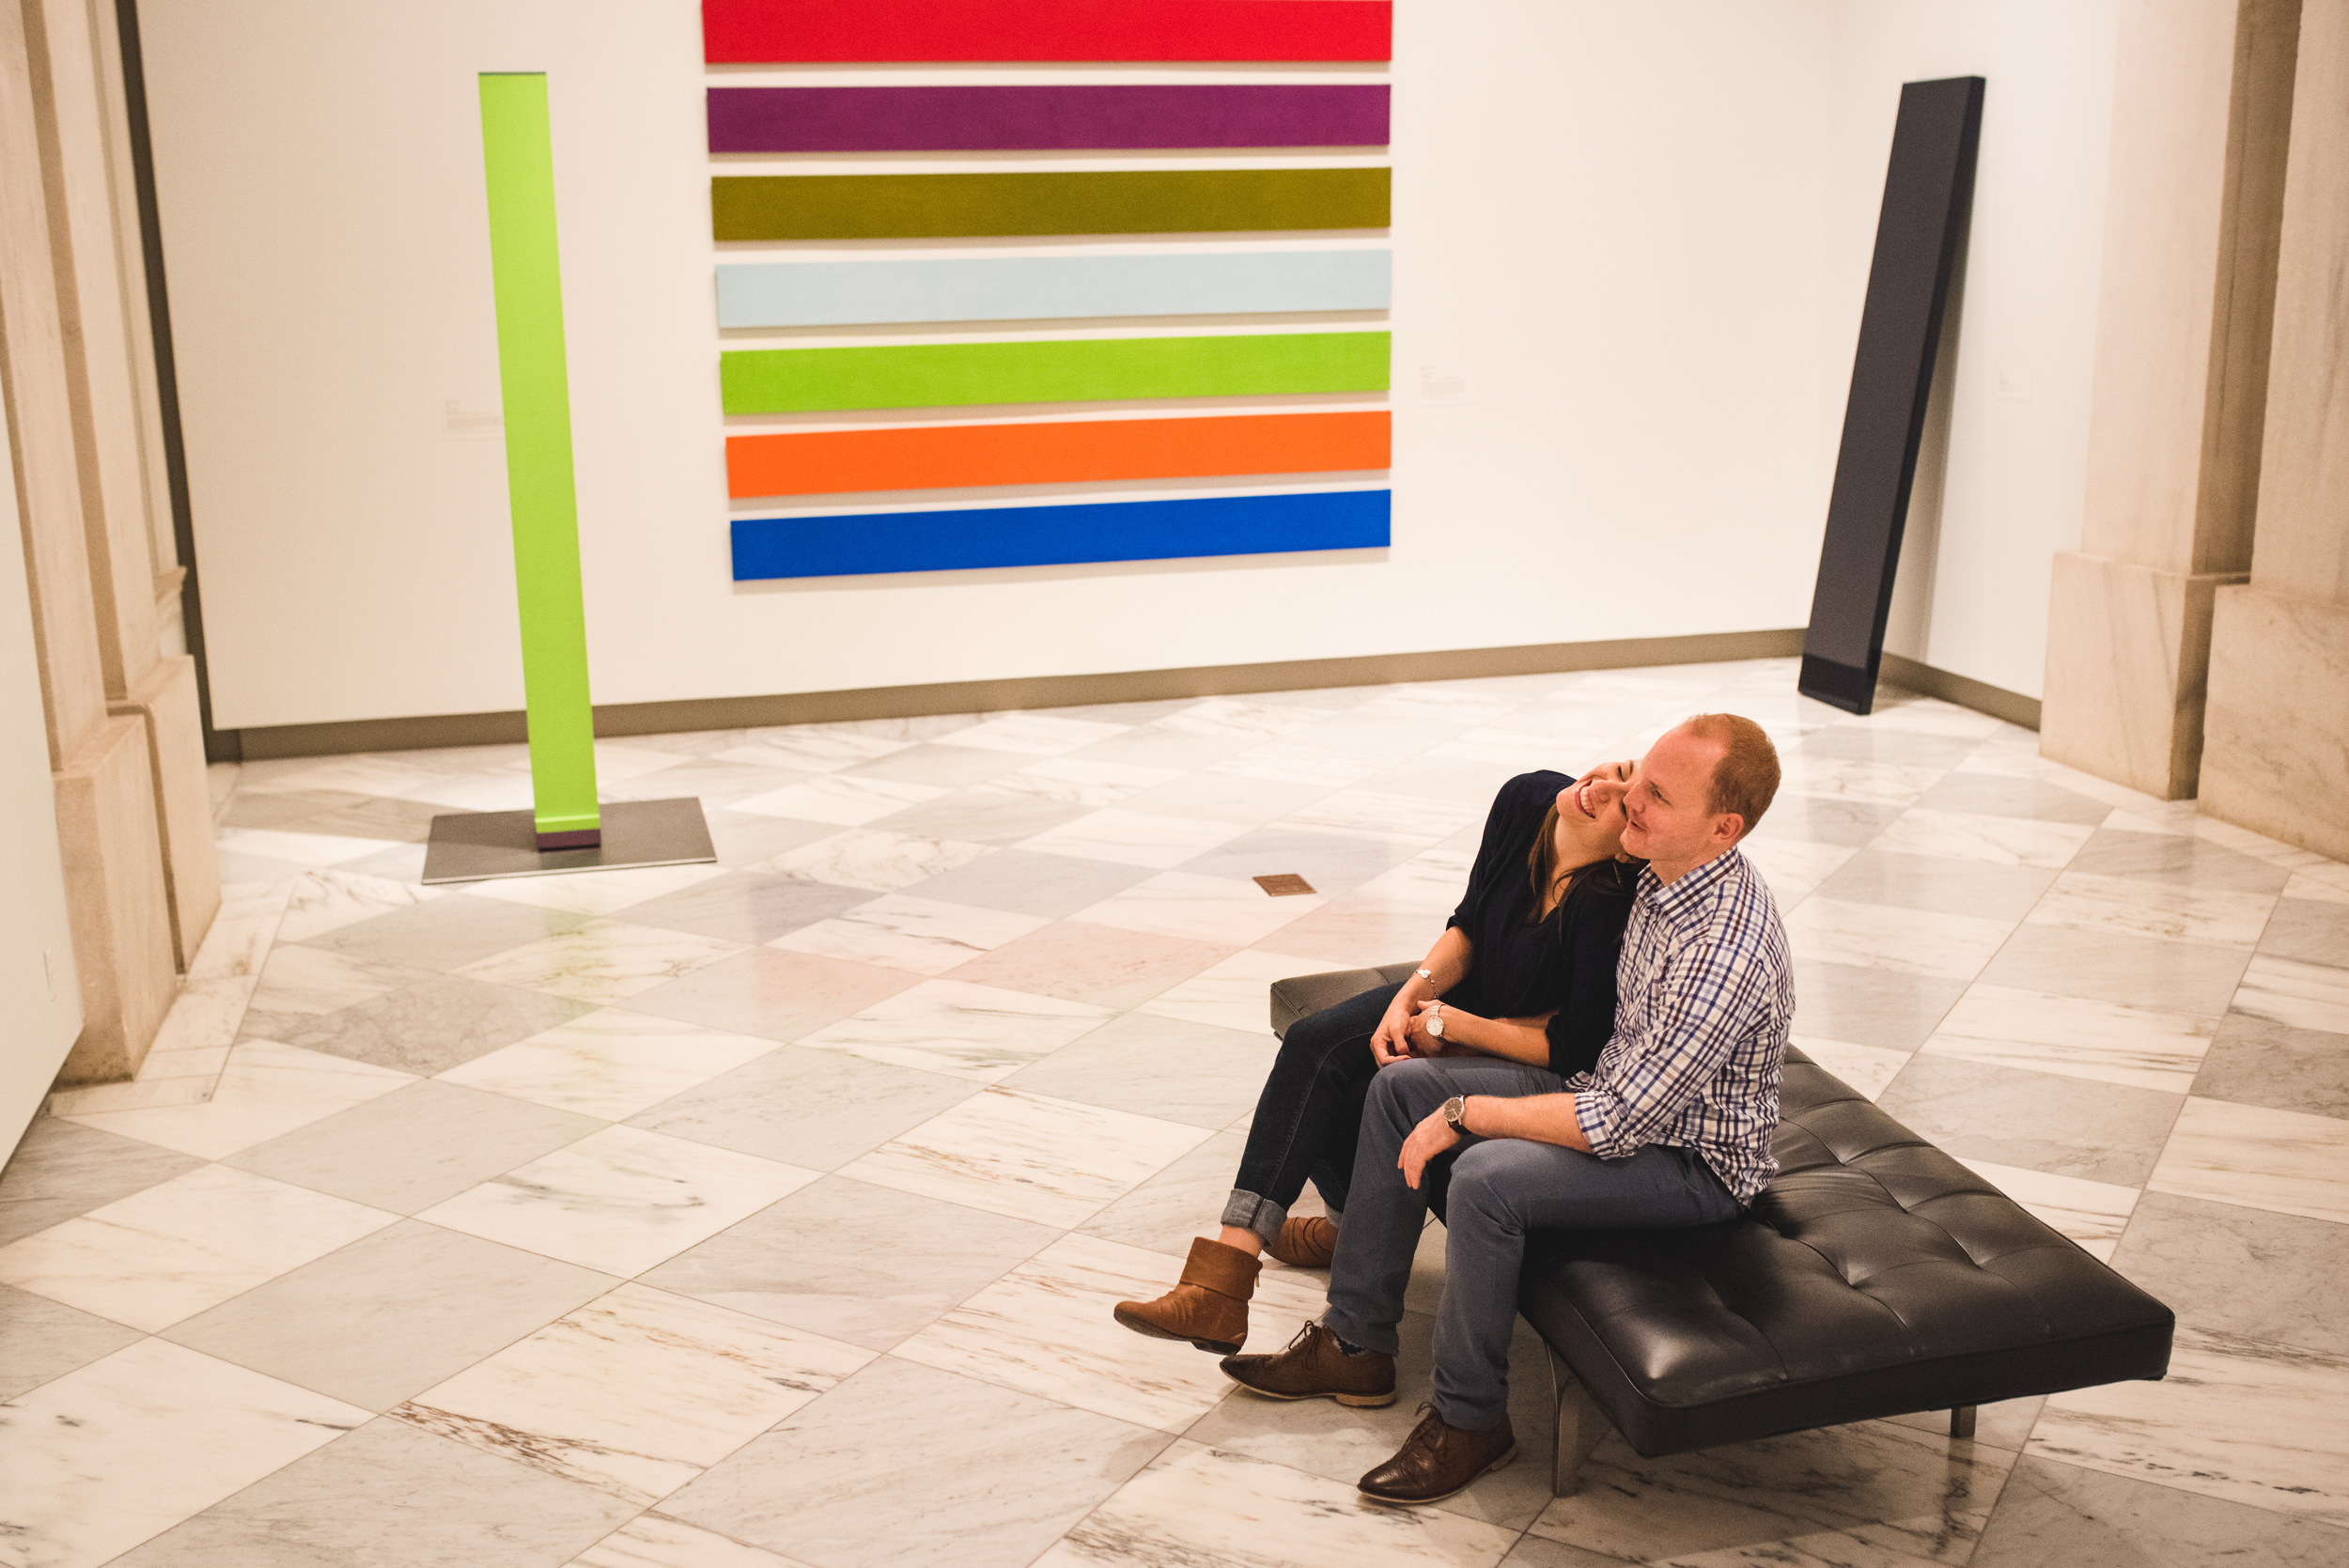 Smithsonian American Art Museum engagement session by Mantas Kubilinskas-5.jpg